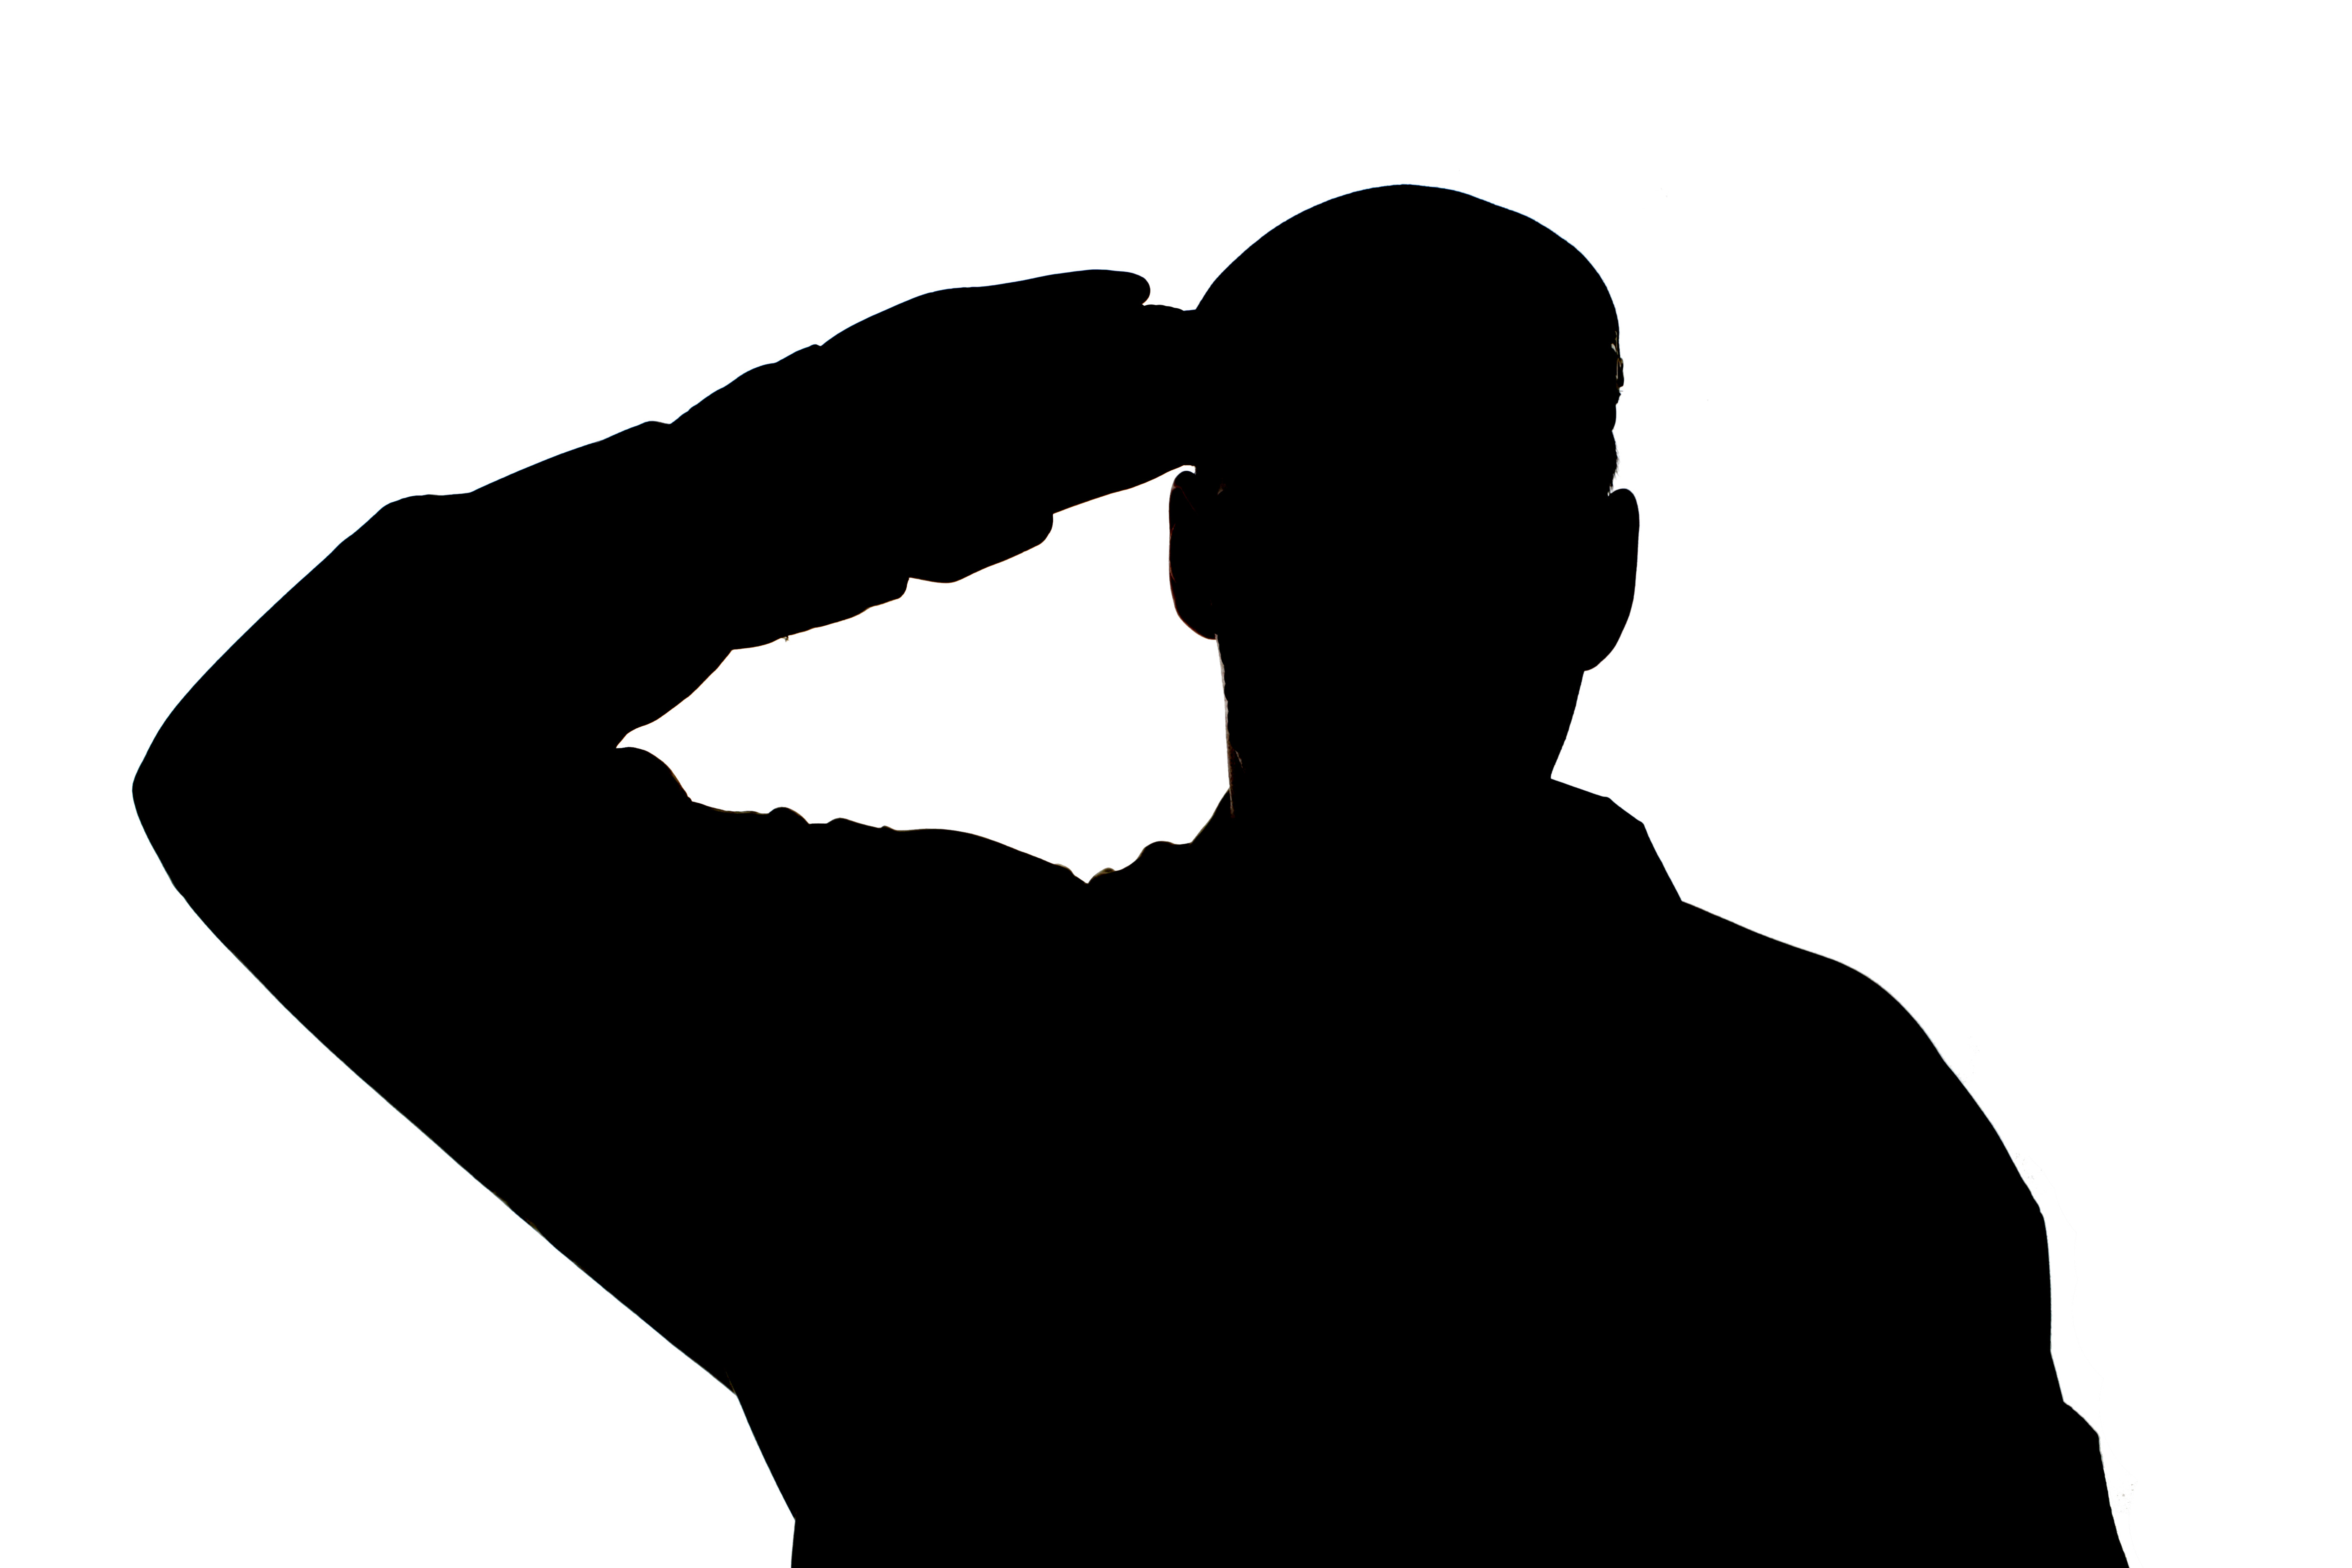 5616x3744 Filebritish Army Soldier Saluting Mod 45154892.jpg